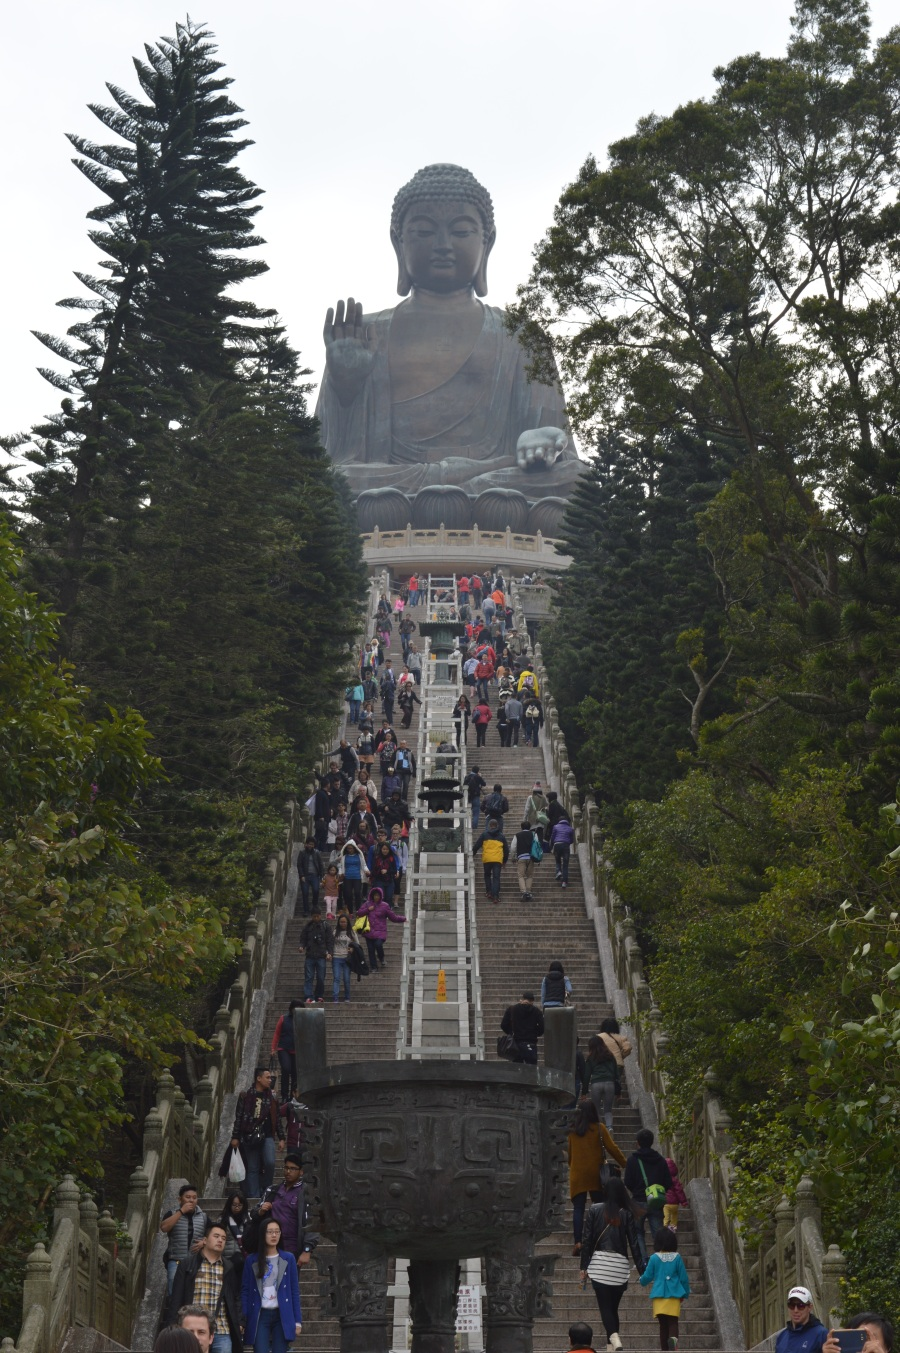 The ascent to the Tian Tan Buddha